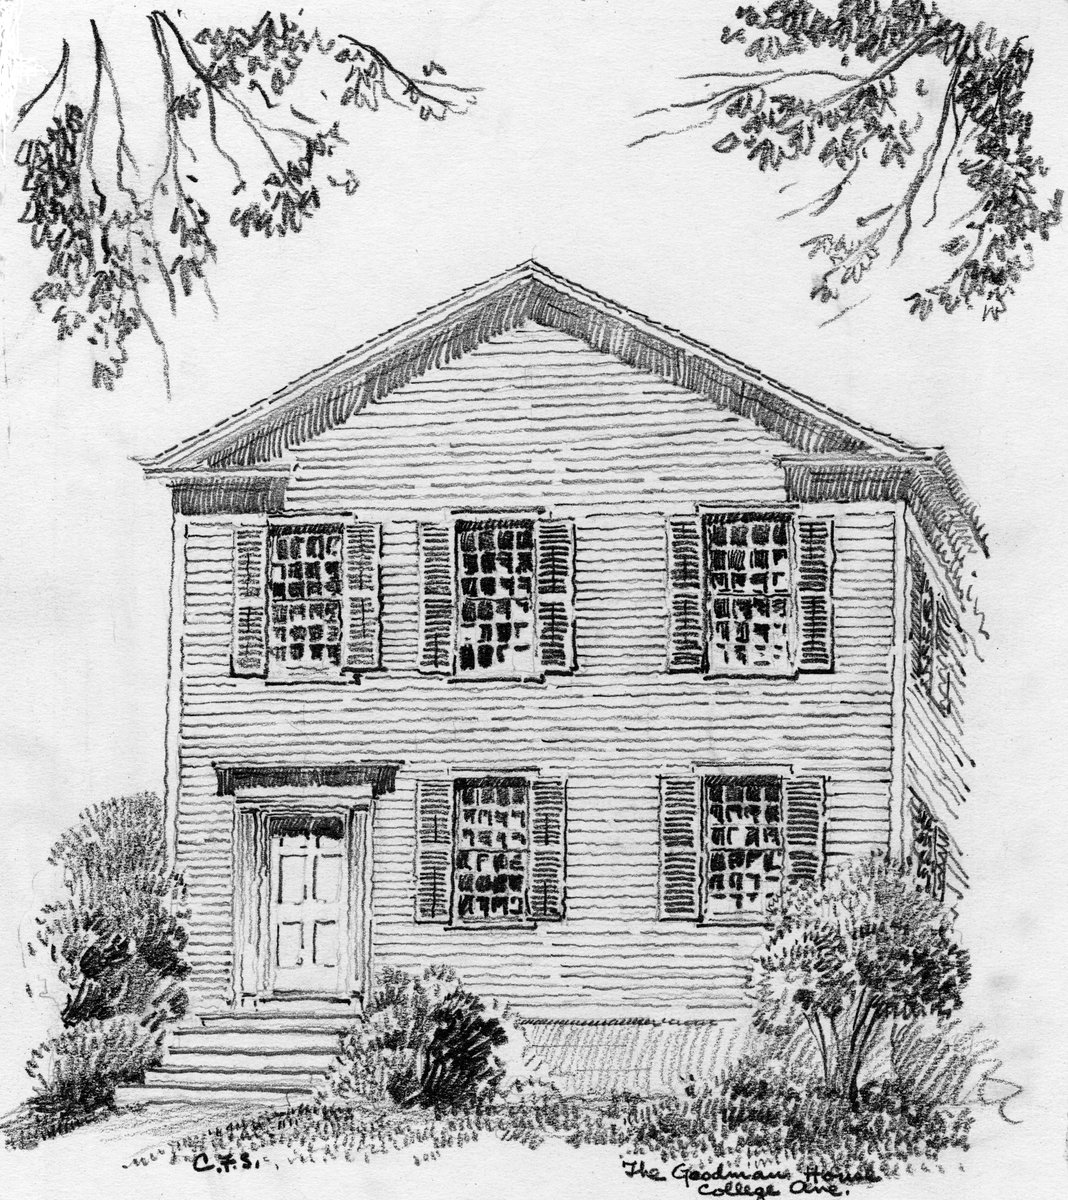 Milne has over 100 drawings of historic homes in the Genesee region, like this one of the Goodman House in Rochester, from the Carl Schmidt Collection in Historic Architecture.  We'll keep posting more from this and Milne's other special collections! https://t.co/mjHApkeIBI